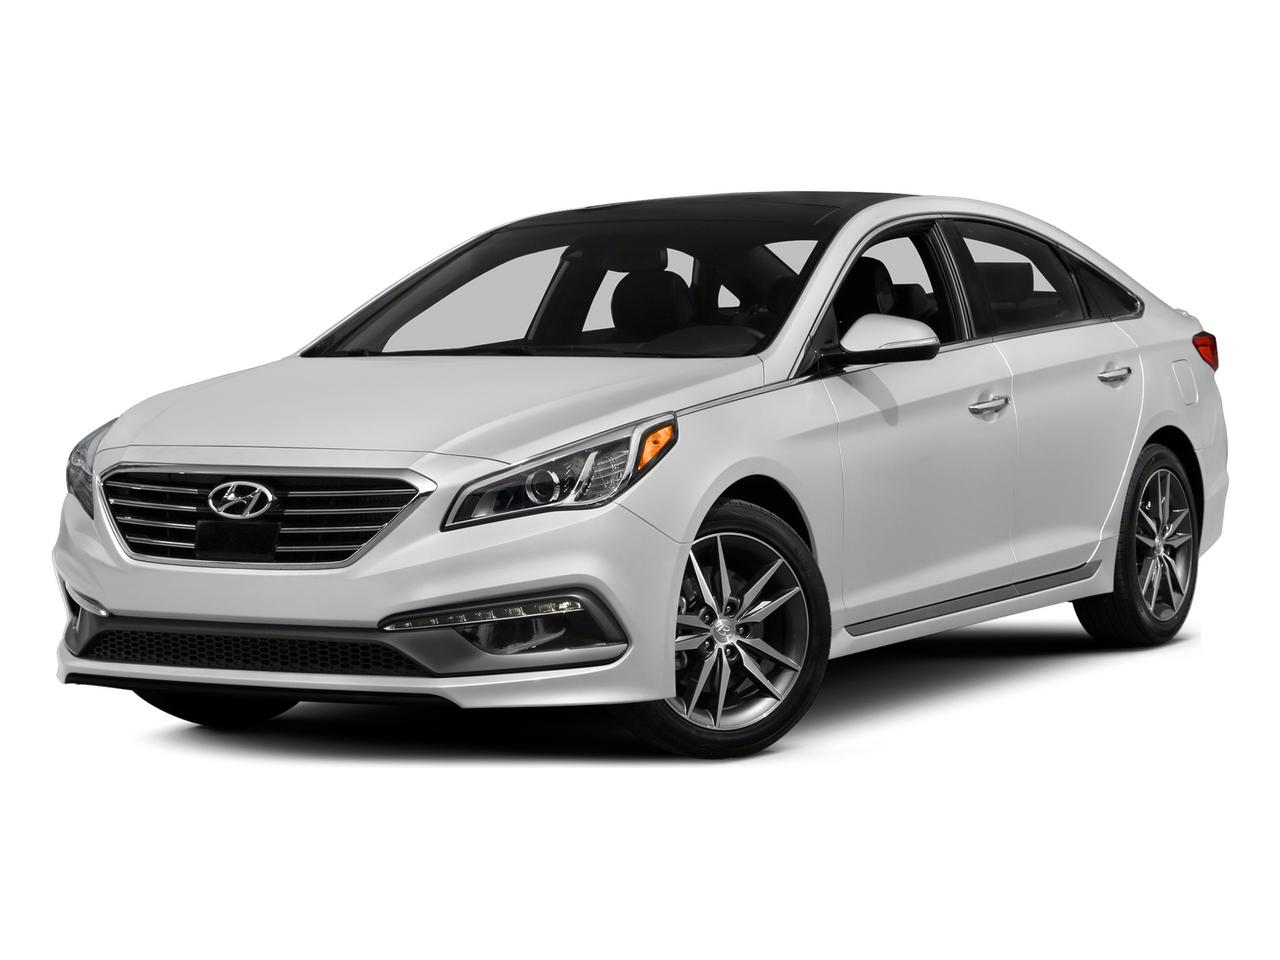 2015 Hyundai Sonata Vehicle Photo in Quakertown, PA 18951